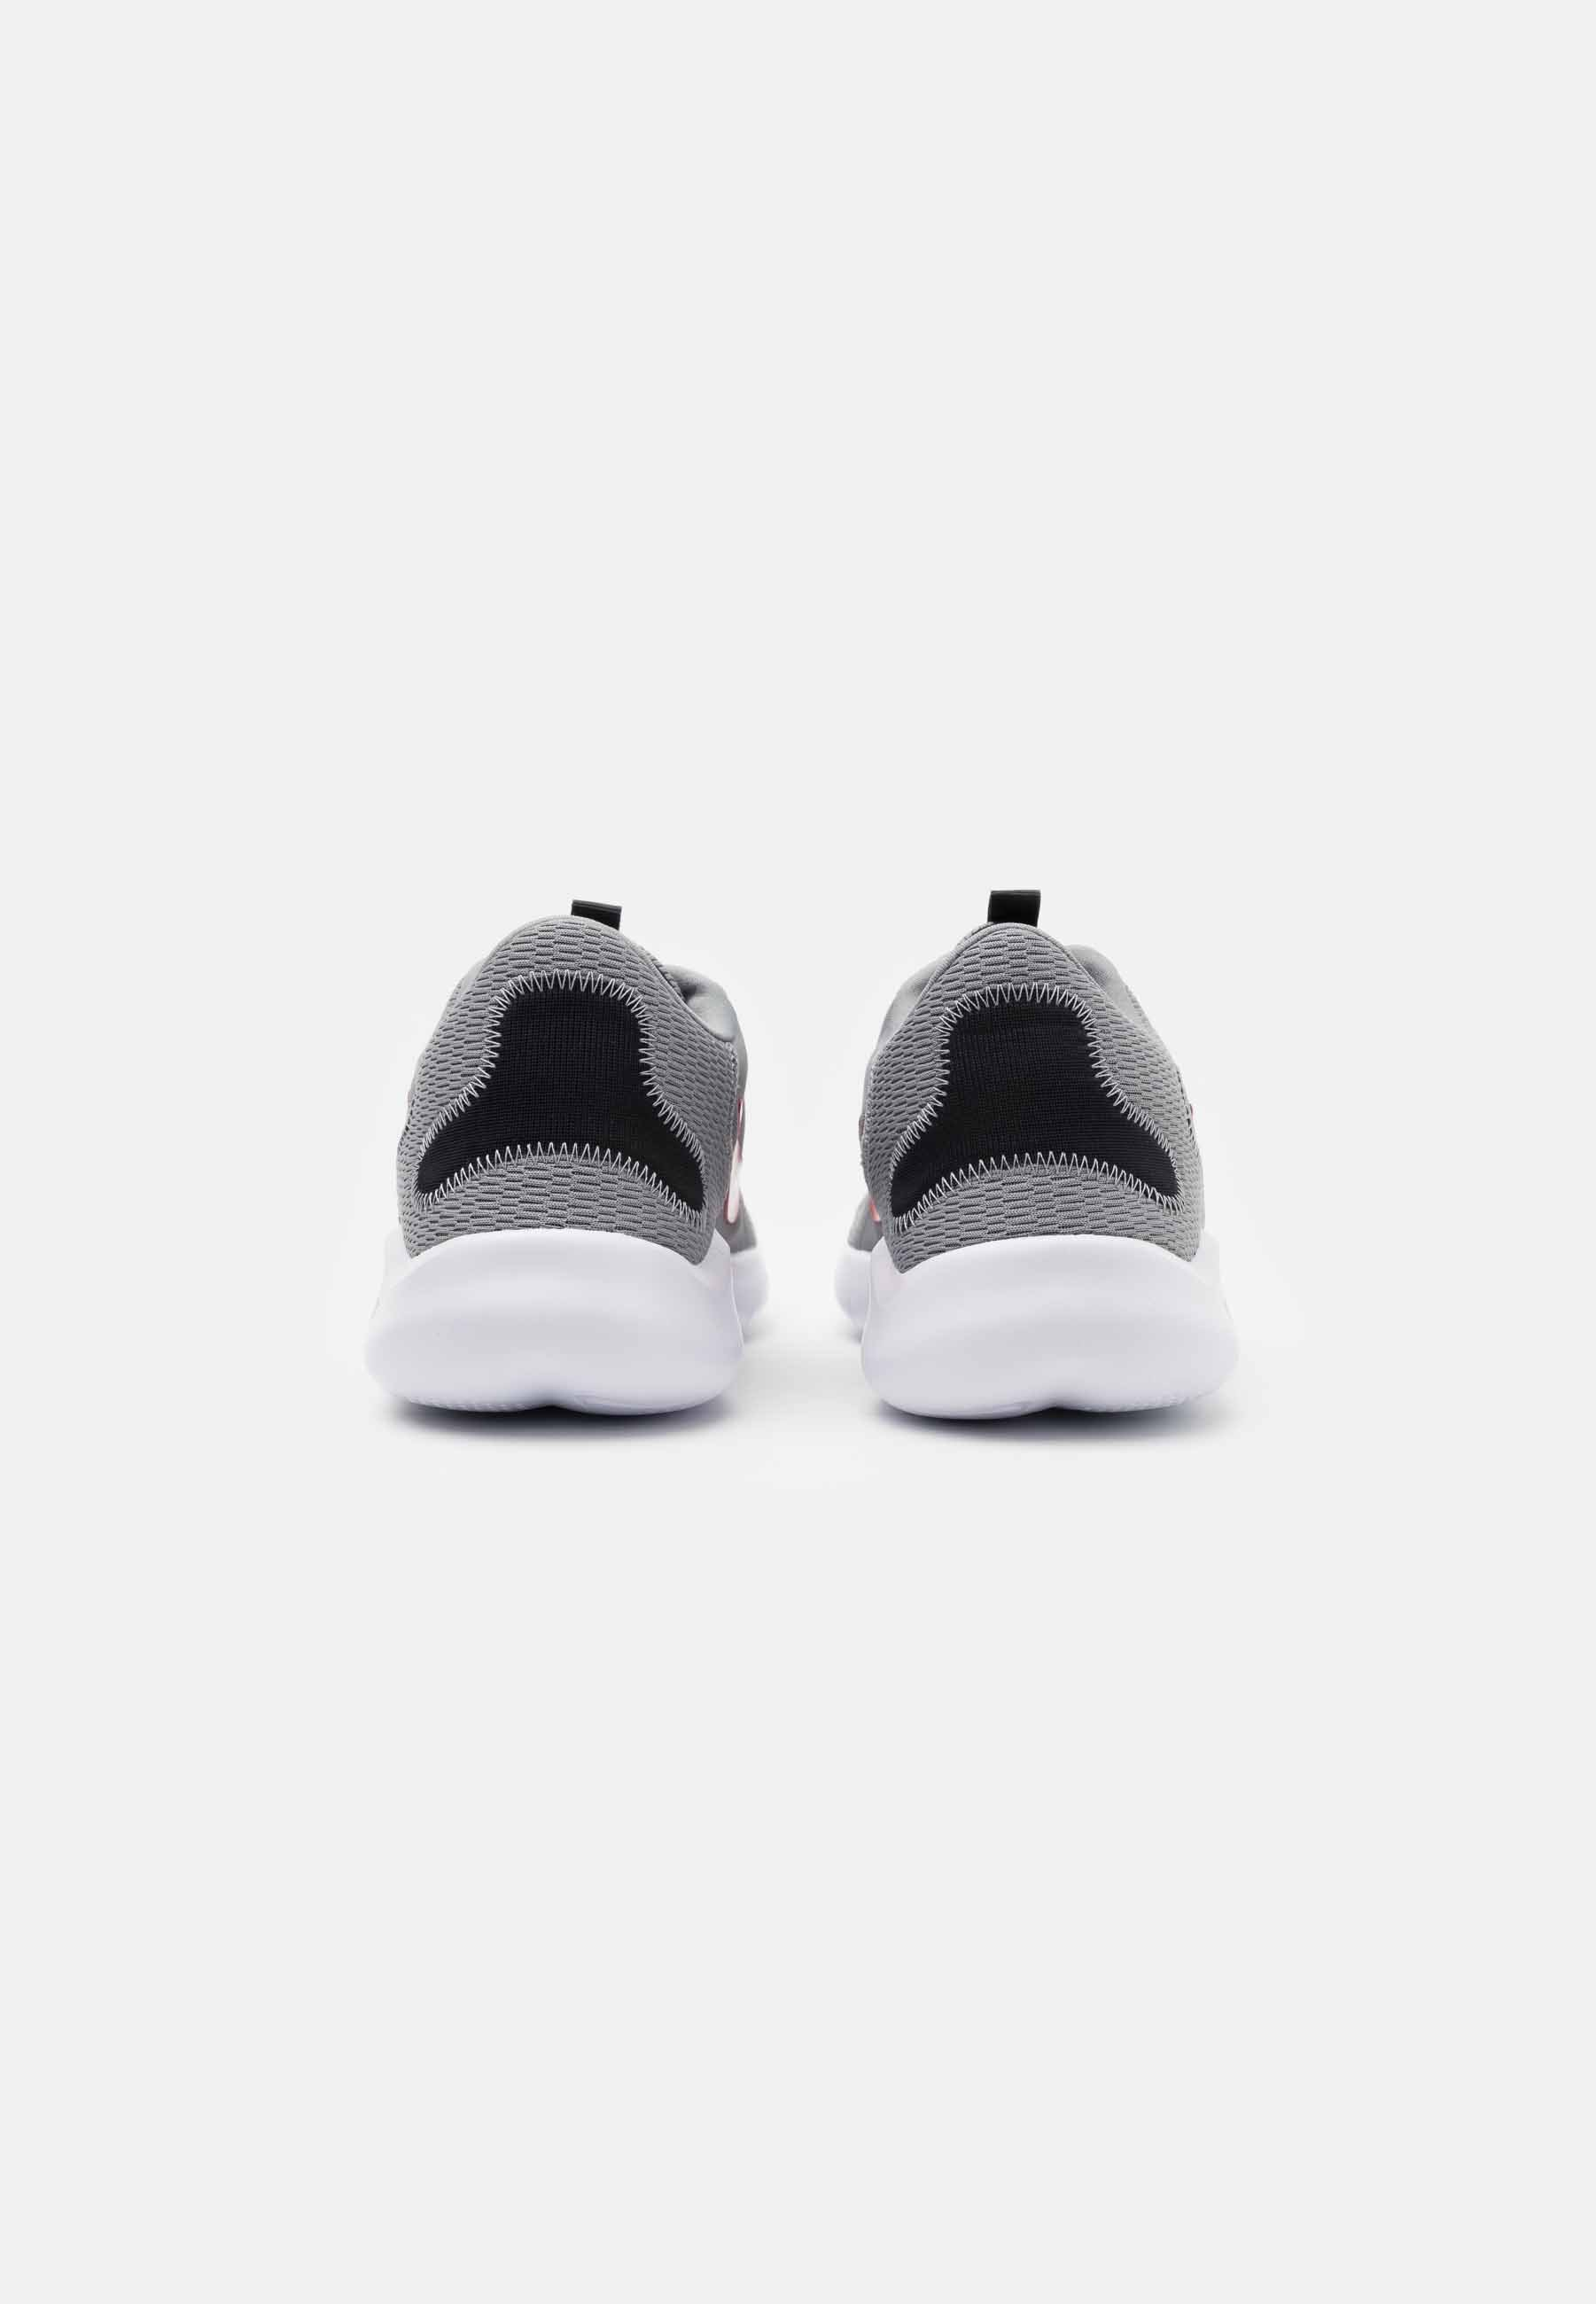 Buy Newest Cheapest Men's Shoes Nike Performance FLEX EXPERIENCE RUN 9 Competition running shoes particle grey/chile red/black/racer blue CIdbnA9ll uMKpk1Sa8